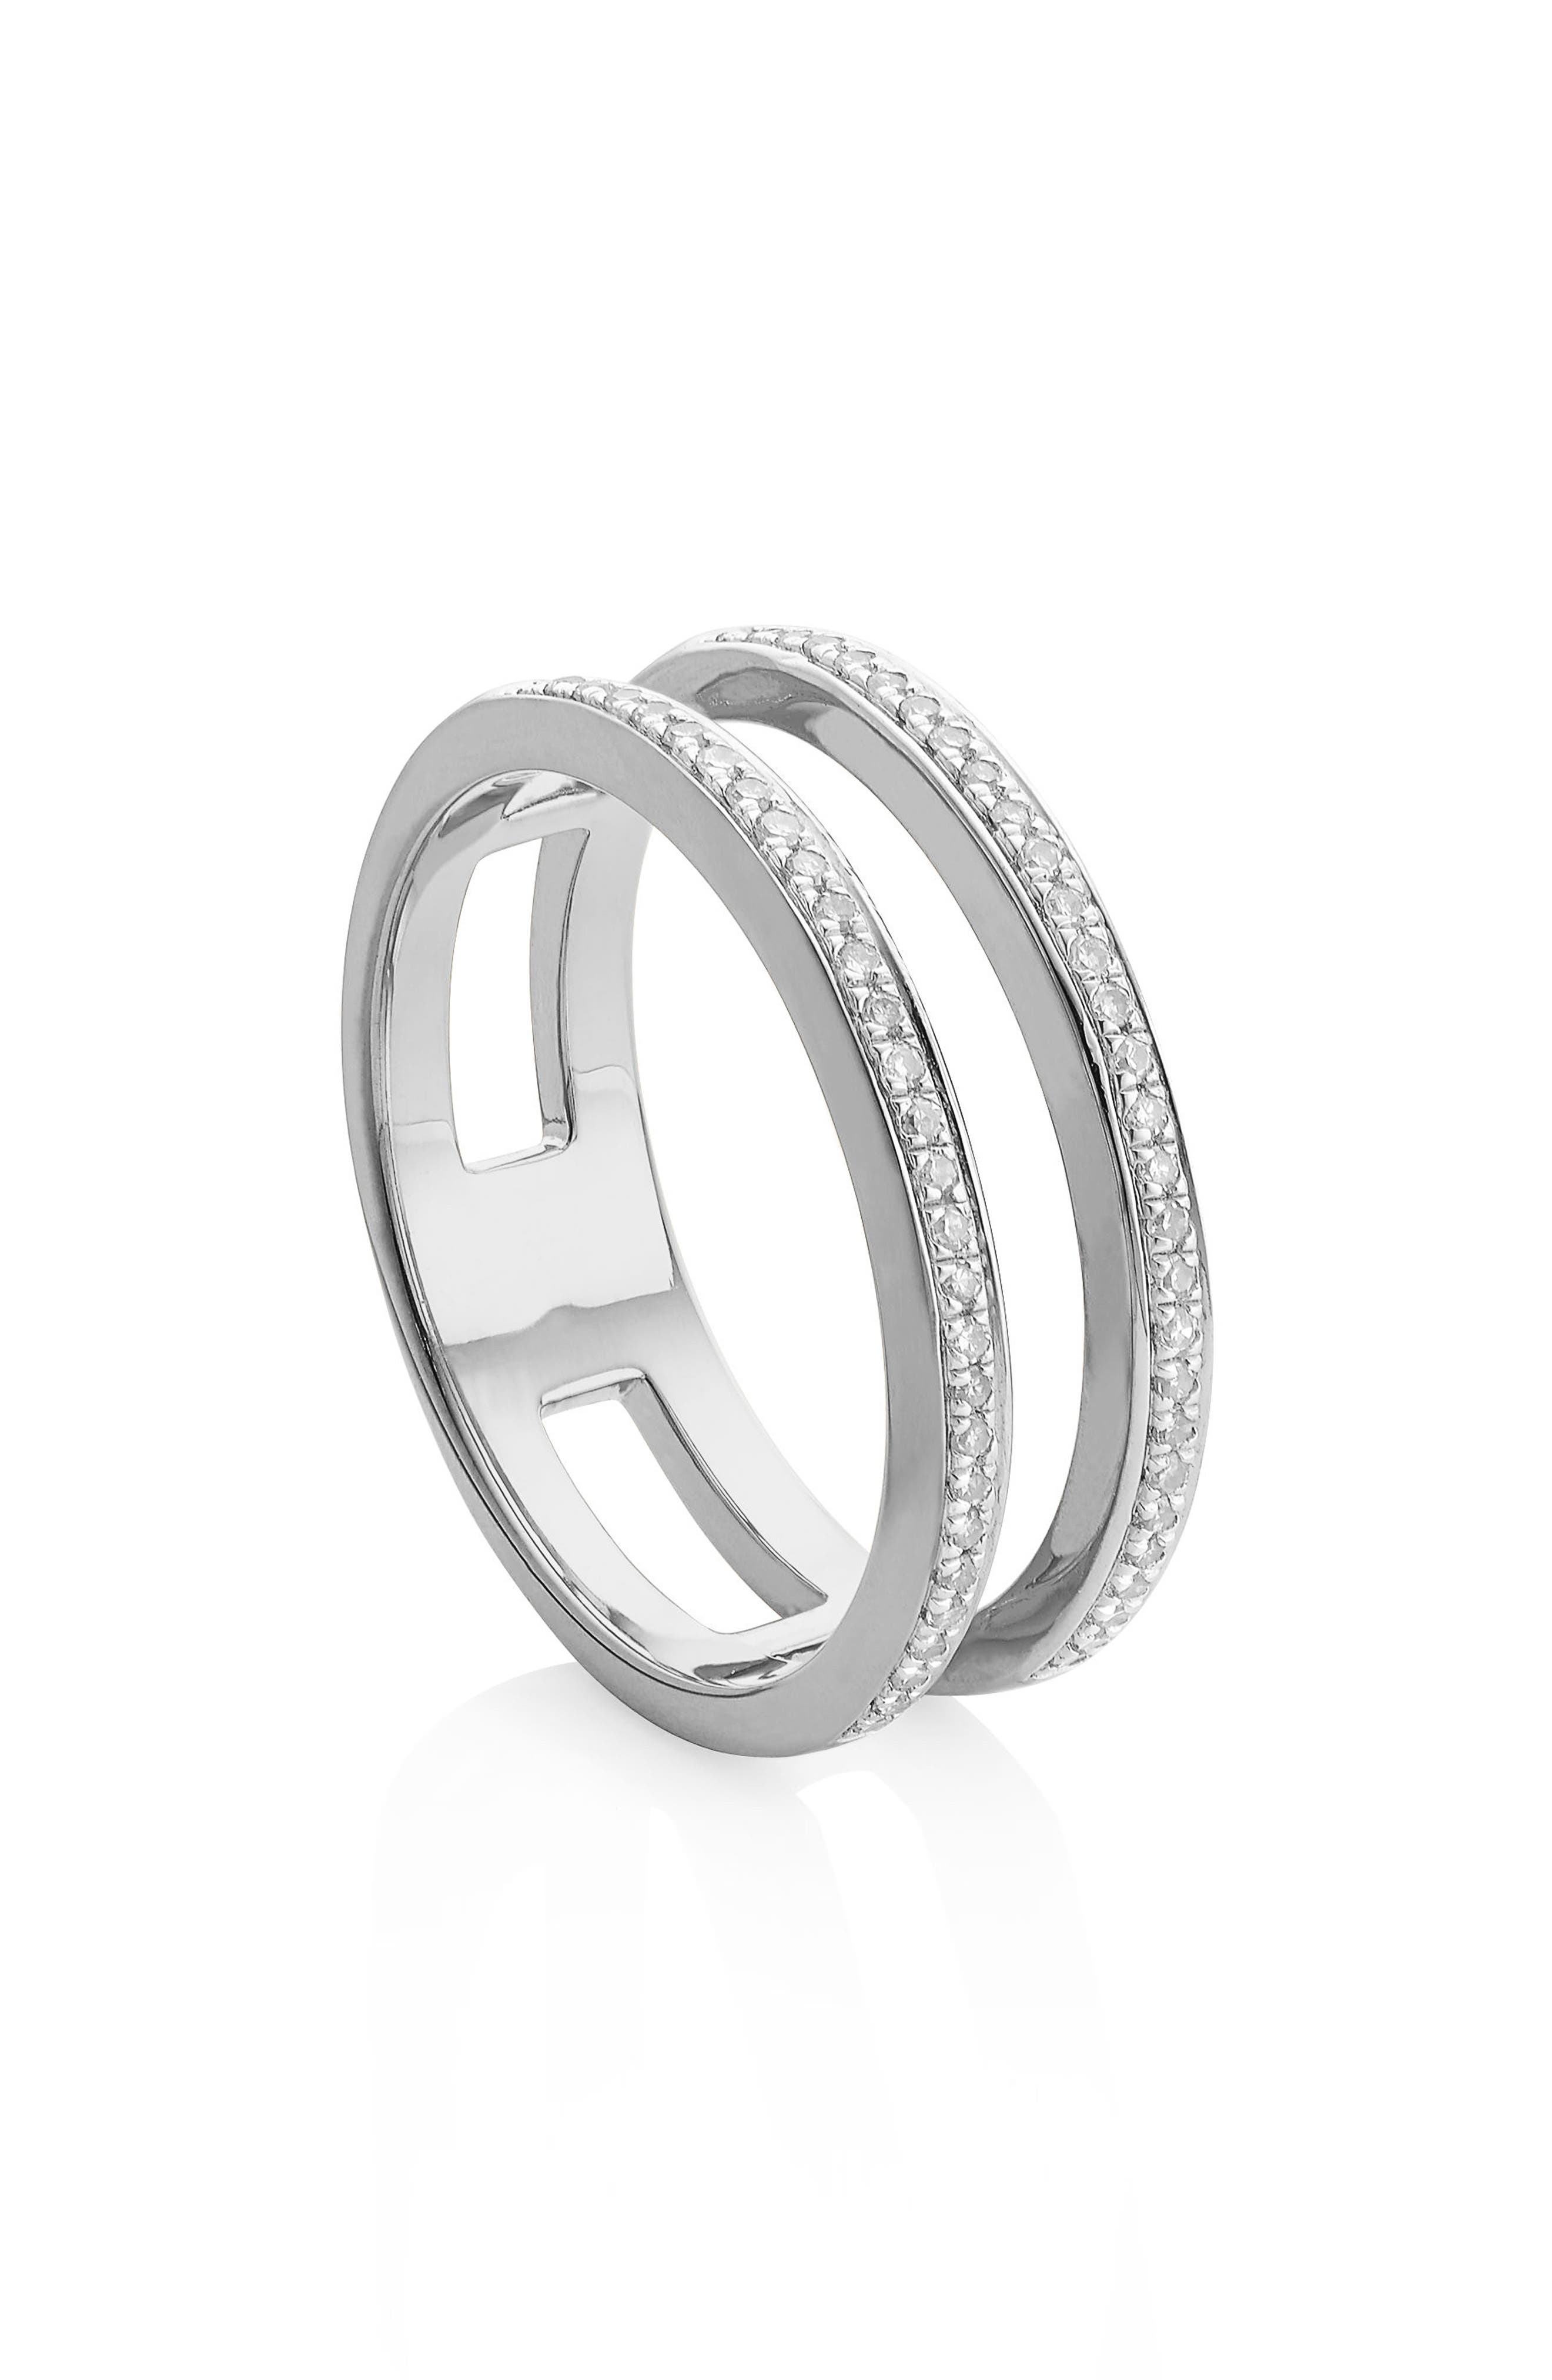 Skinny Double Band Diamond Ring,                             Alternate thumbnail 2, color,                             SILVER